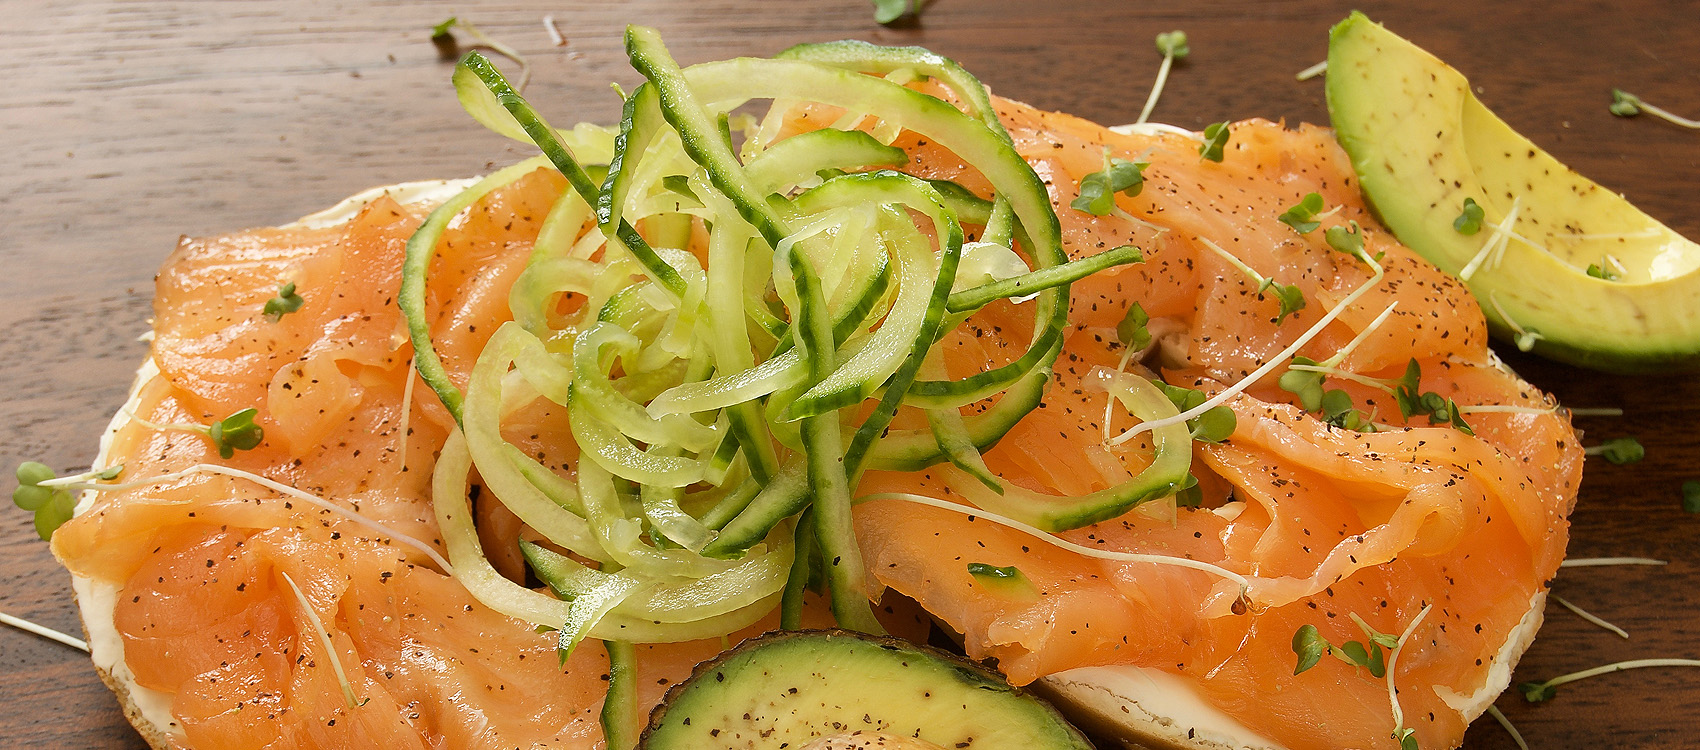 Carberry Catering Belfast salmon, cucumber and avocado dish - photo 1305.